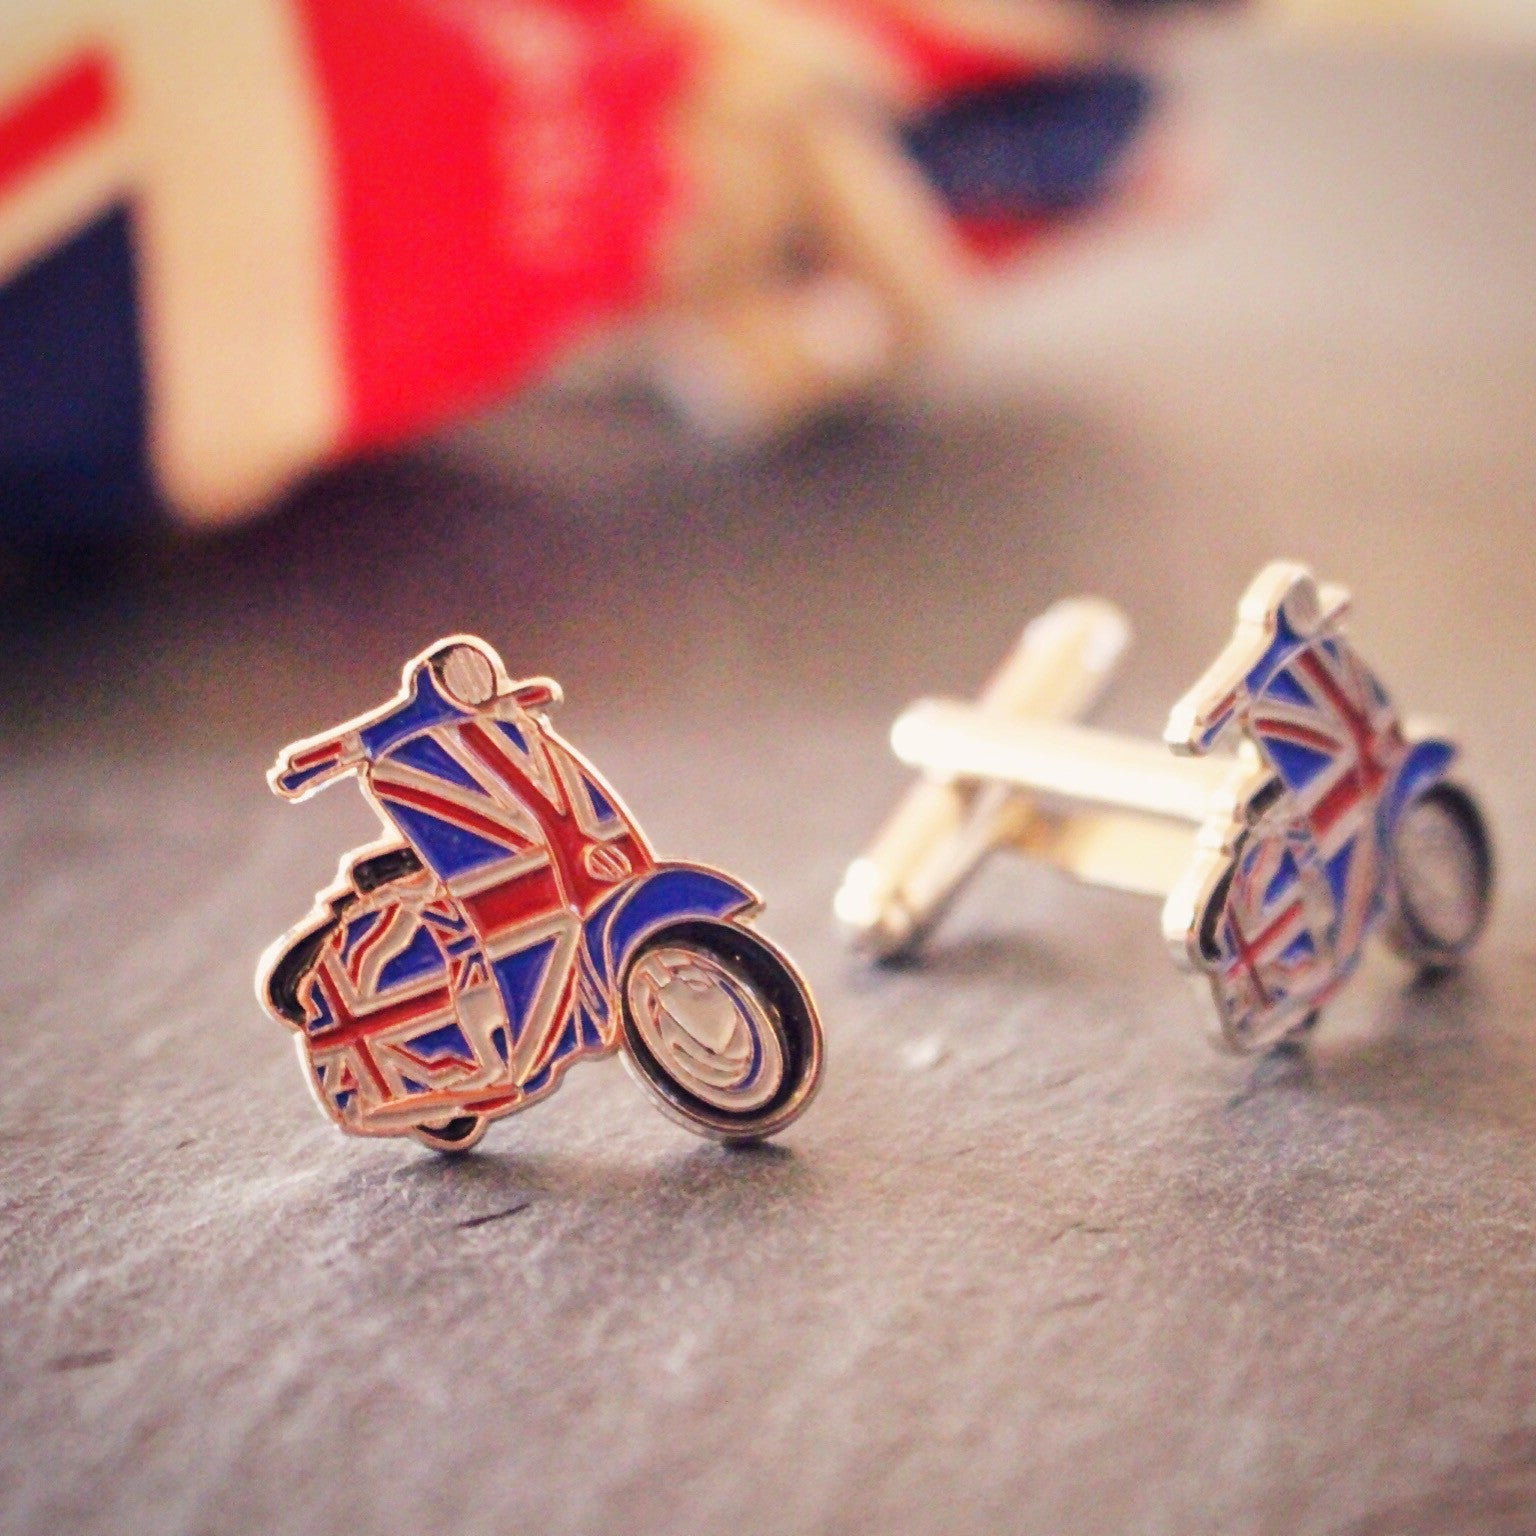 British scooter cufflinks